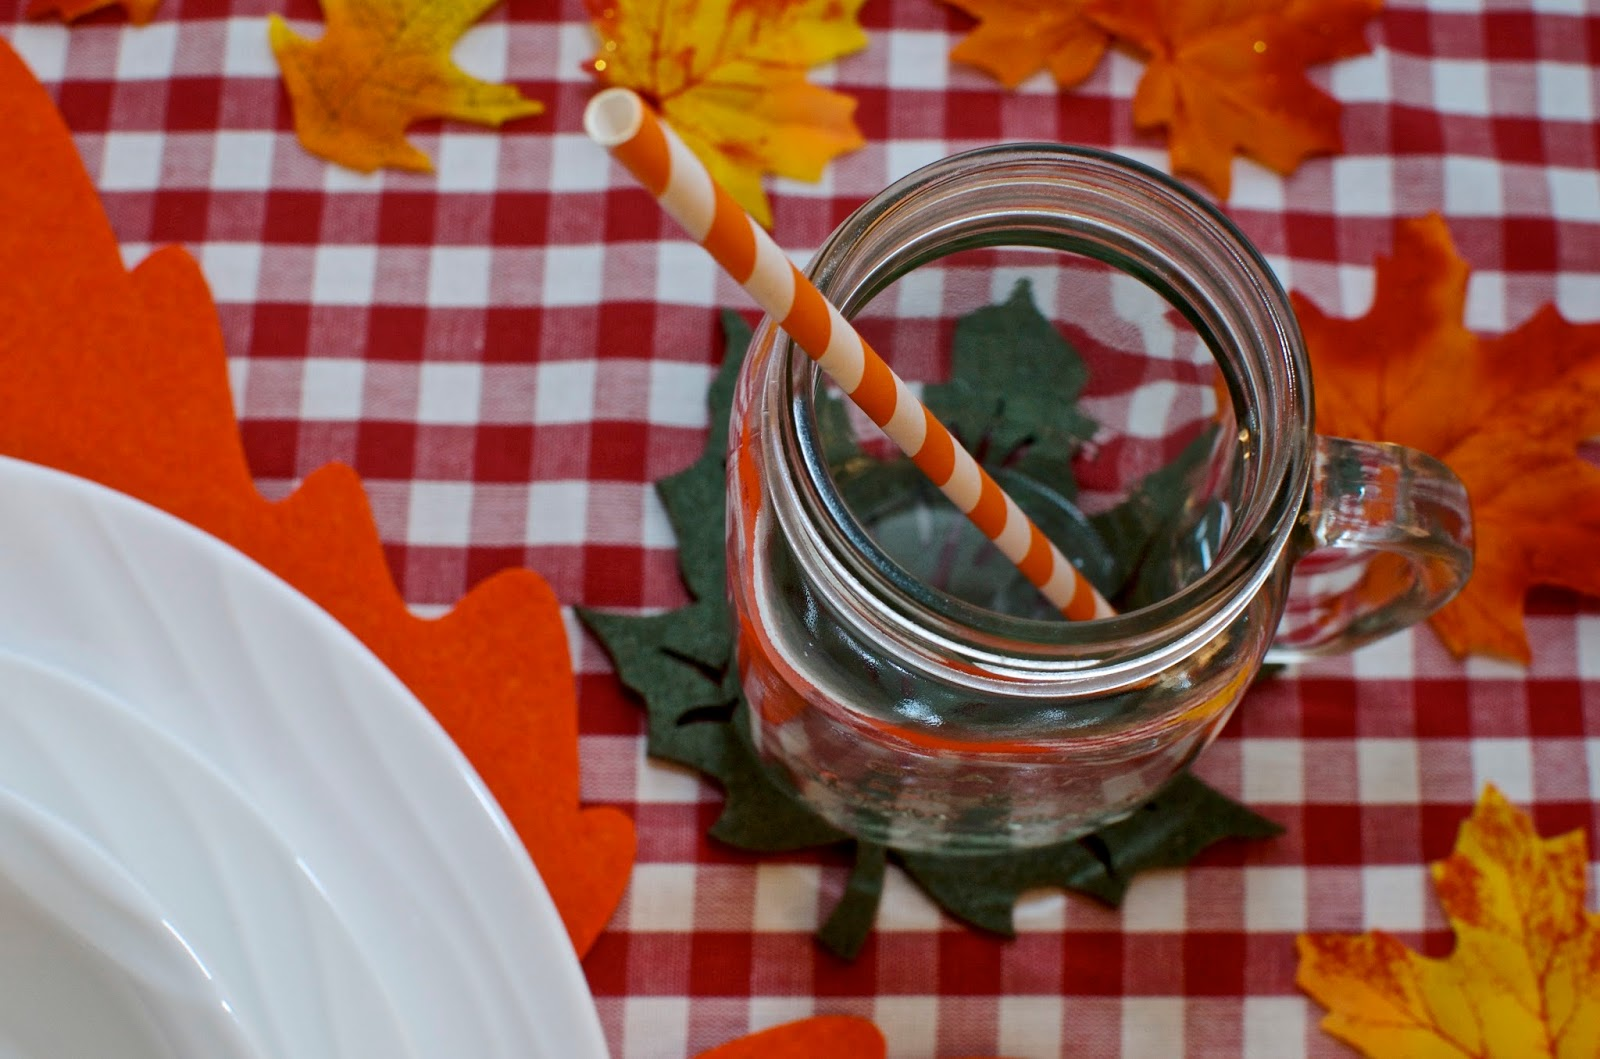 Mason jar glass, orange and white straw, checked tablecloth.